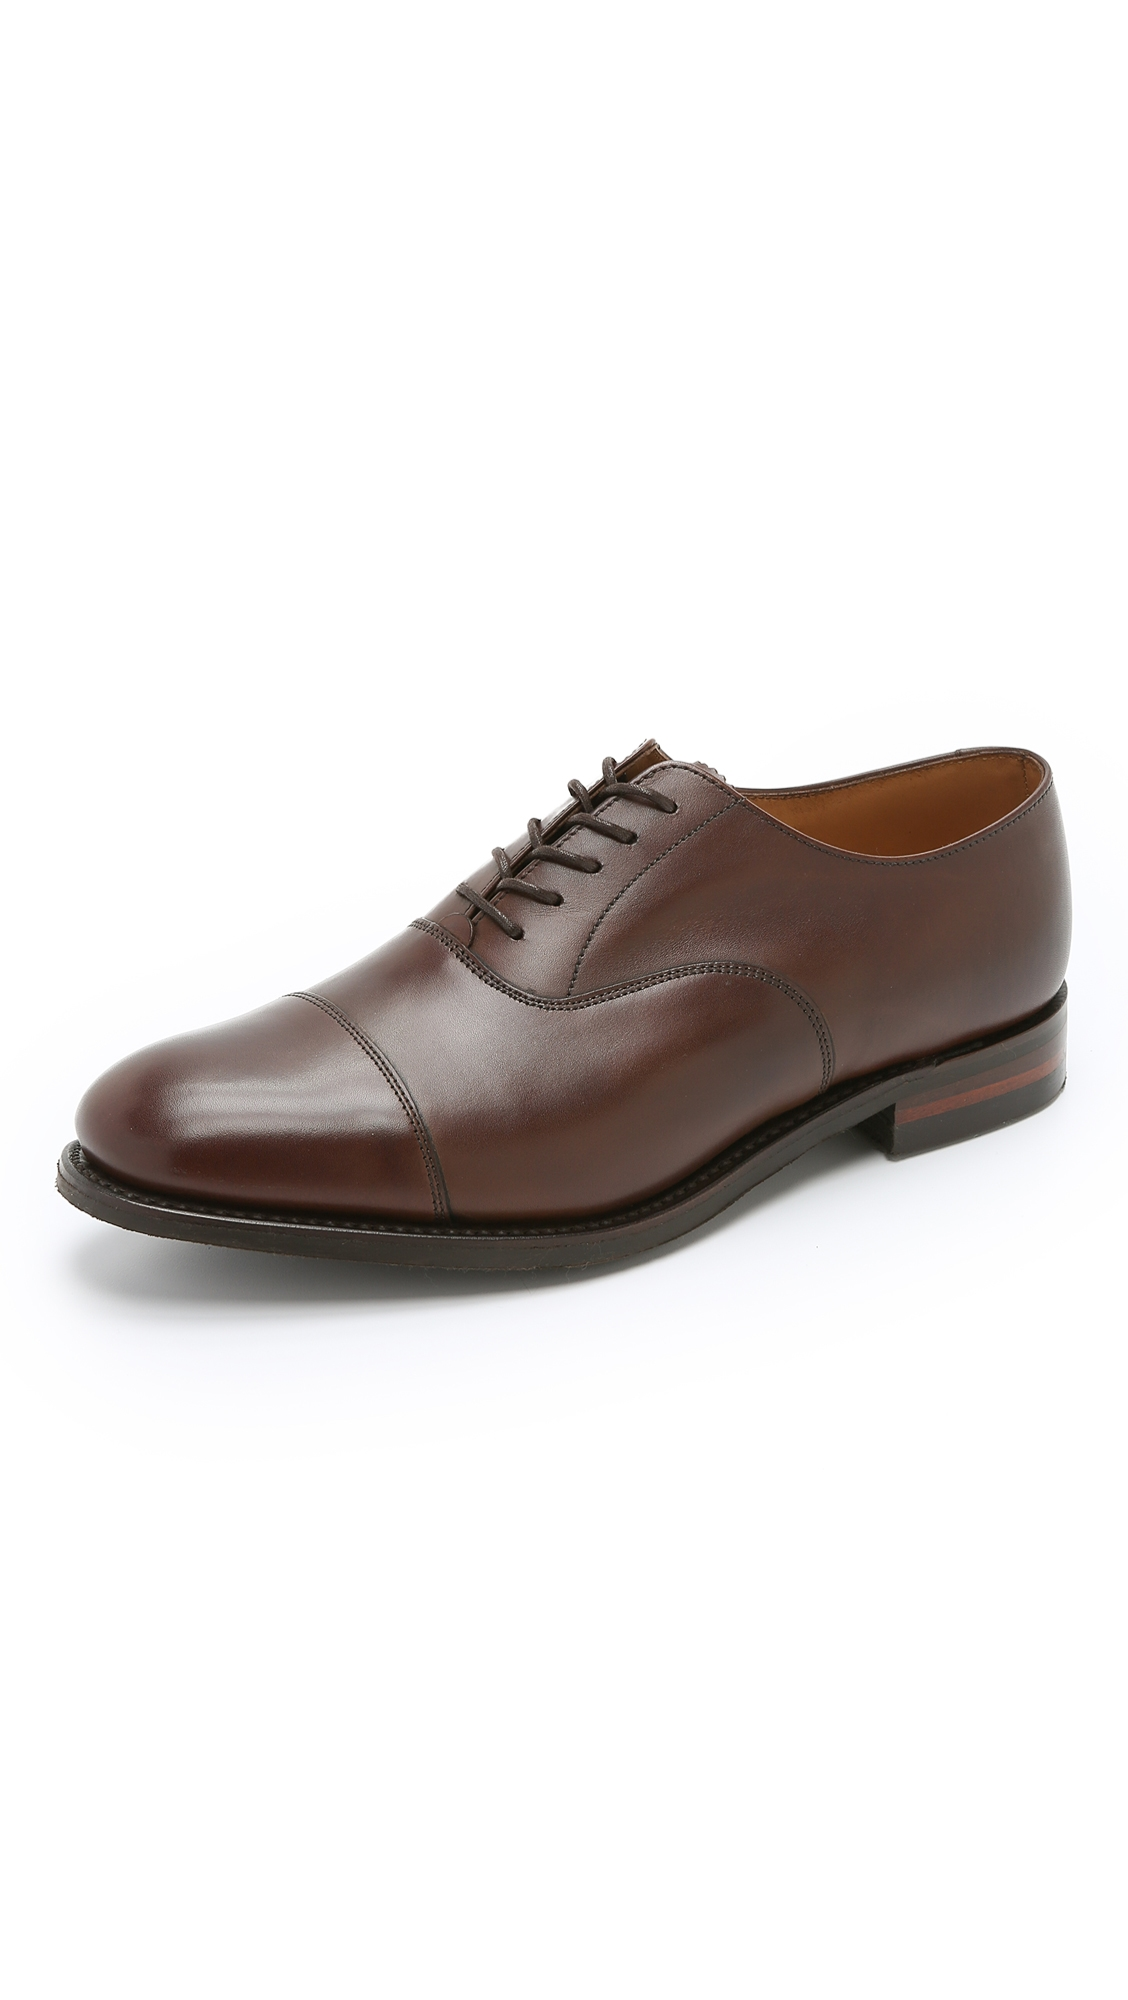 LOAKE 1880 SCAFELL CAP TOE OXFORD SHOES